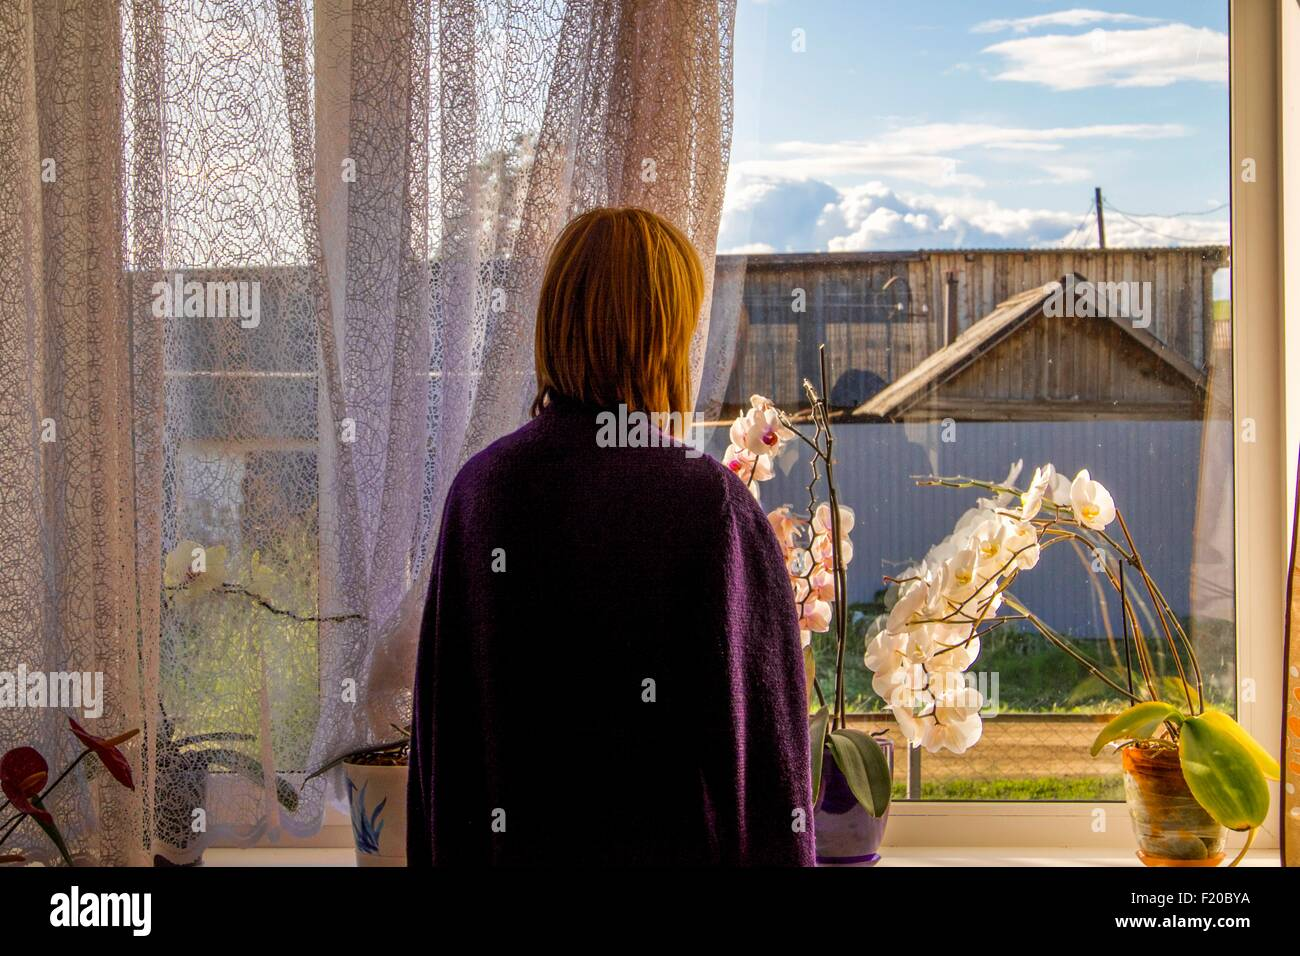 Woman looking out at agricultural building from living room window - Stock Image